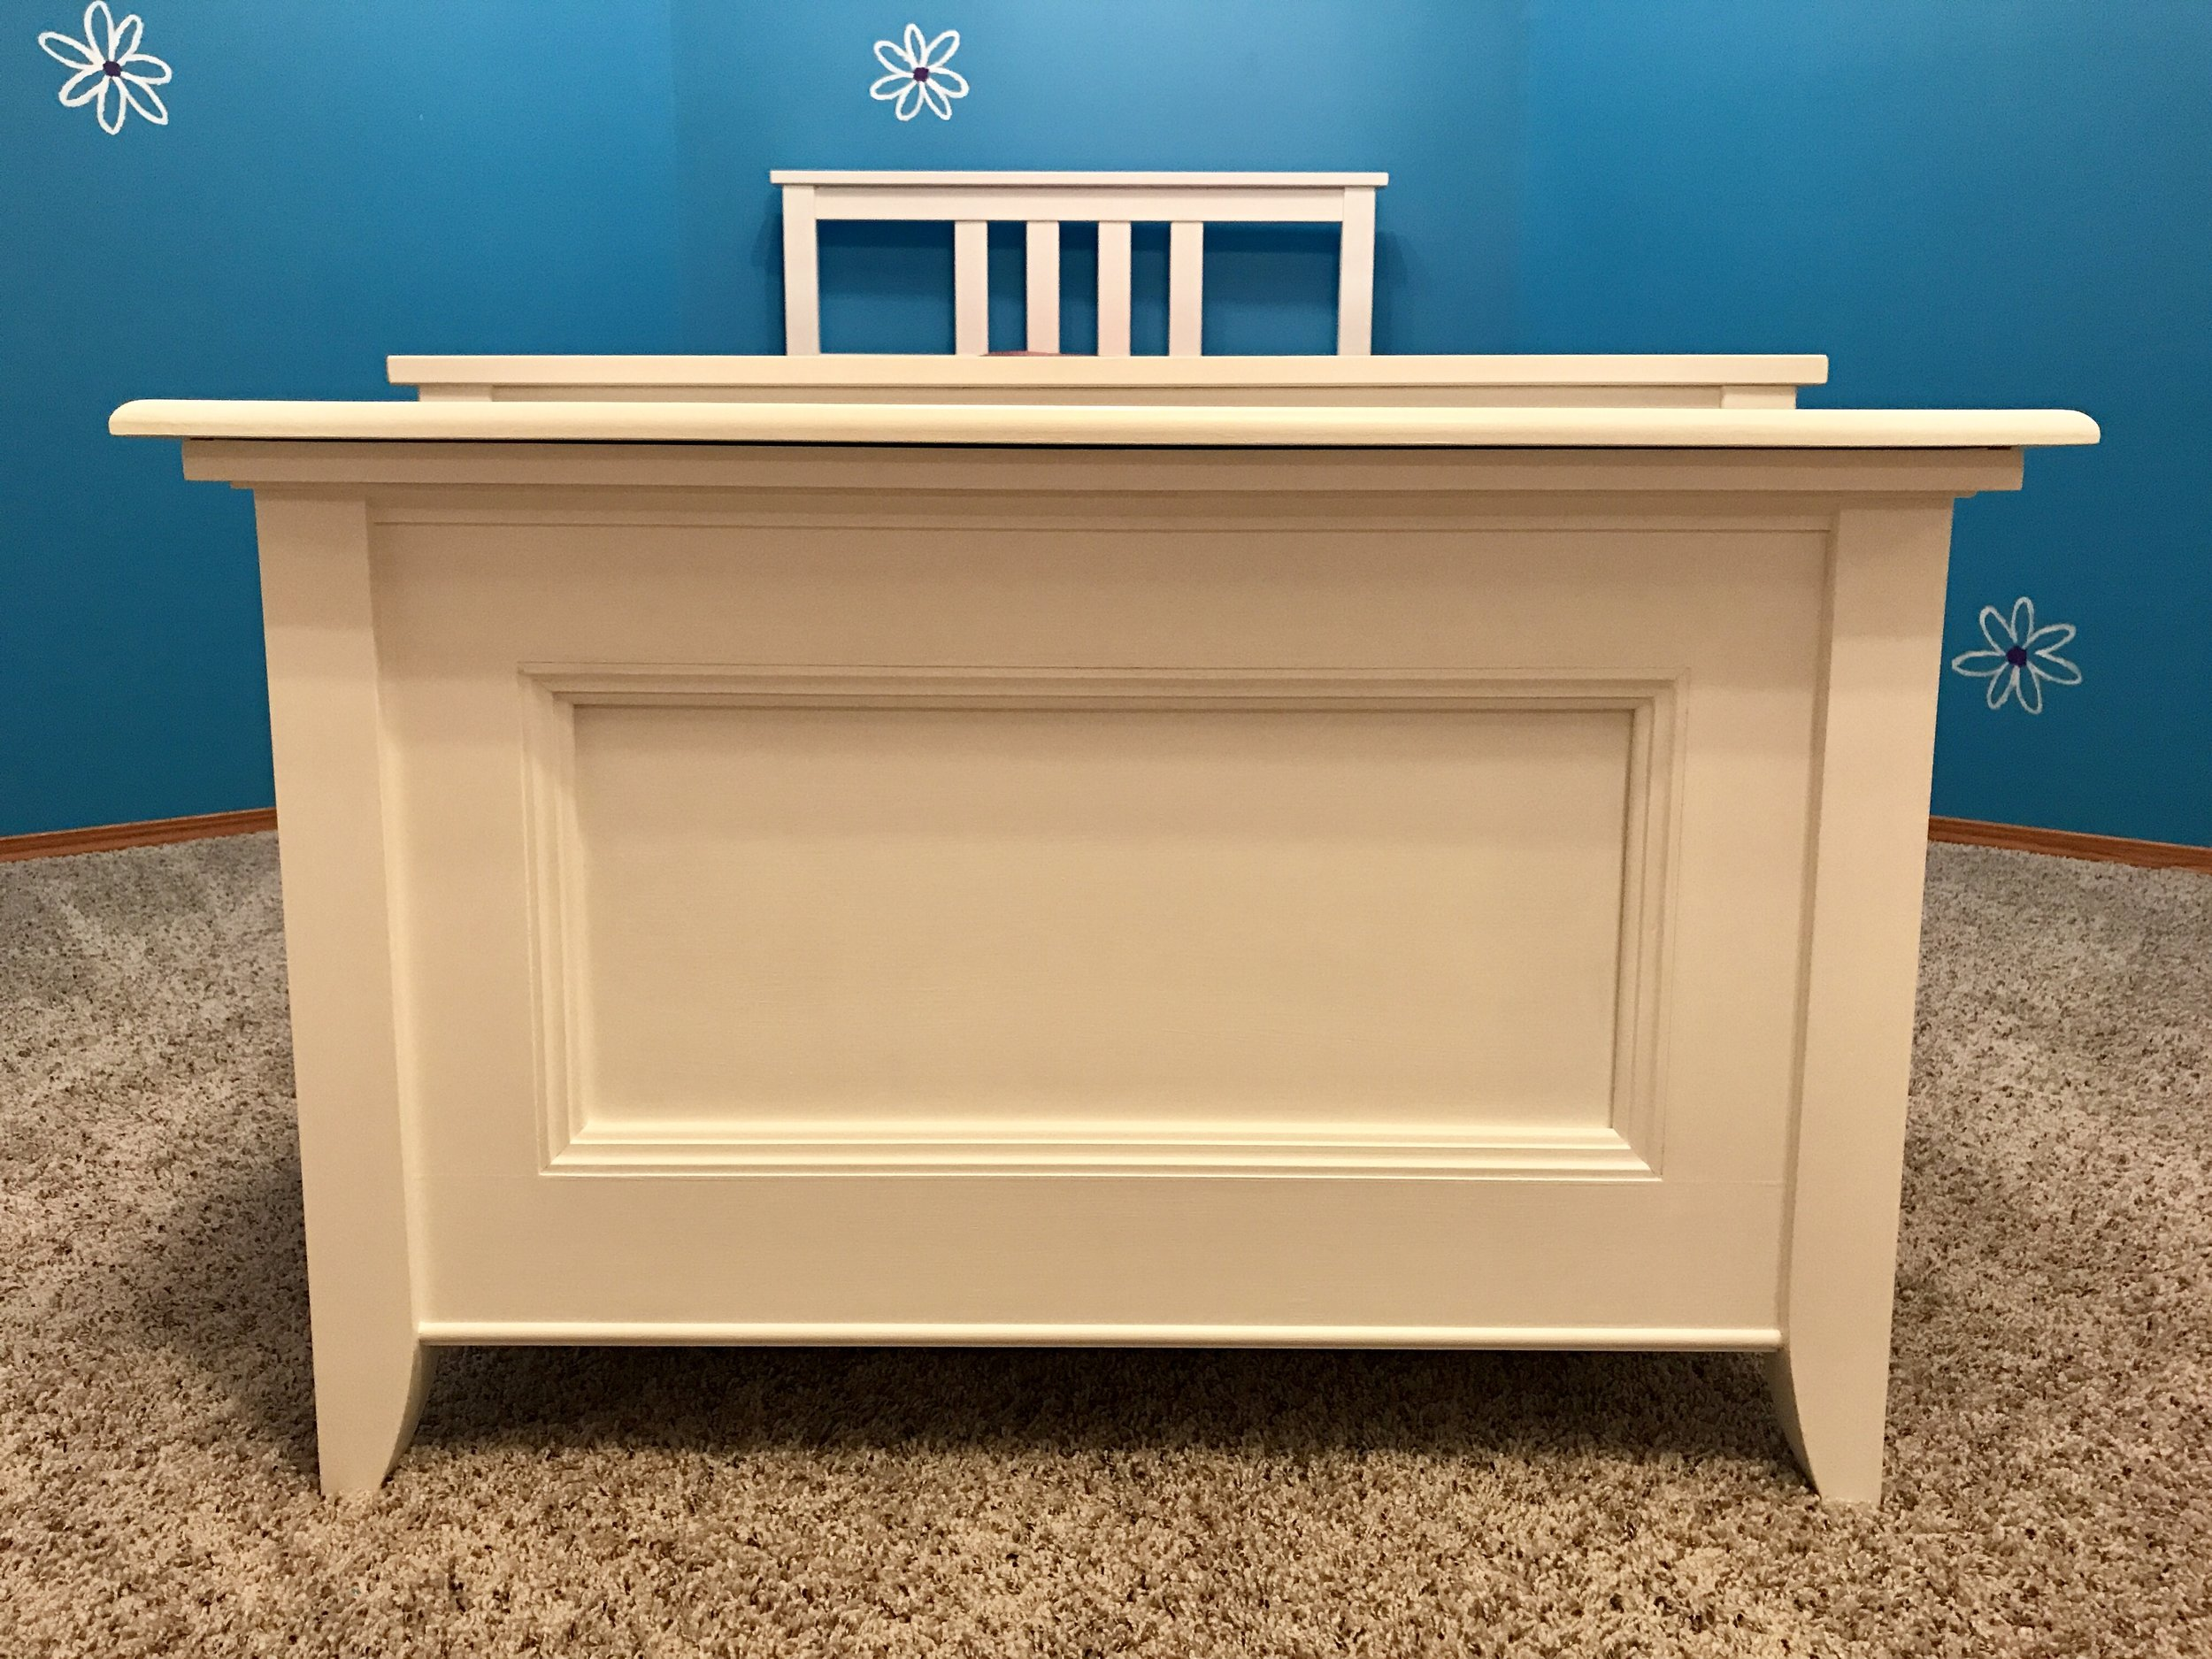 Blanket Chest Toy Box Frontal